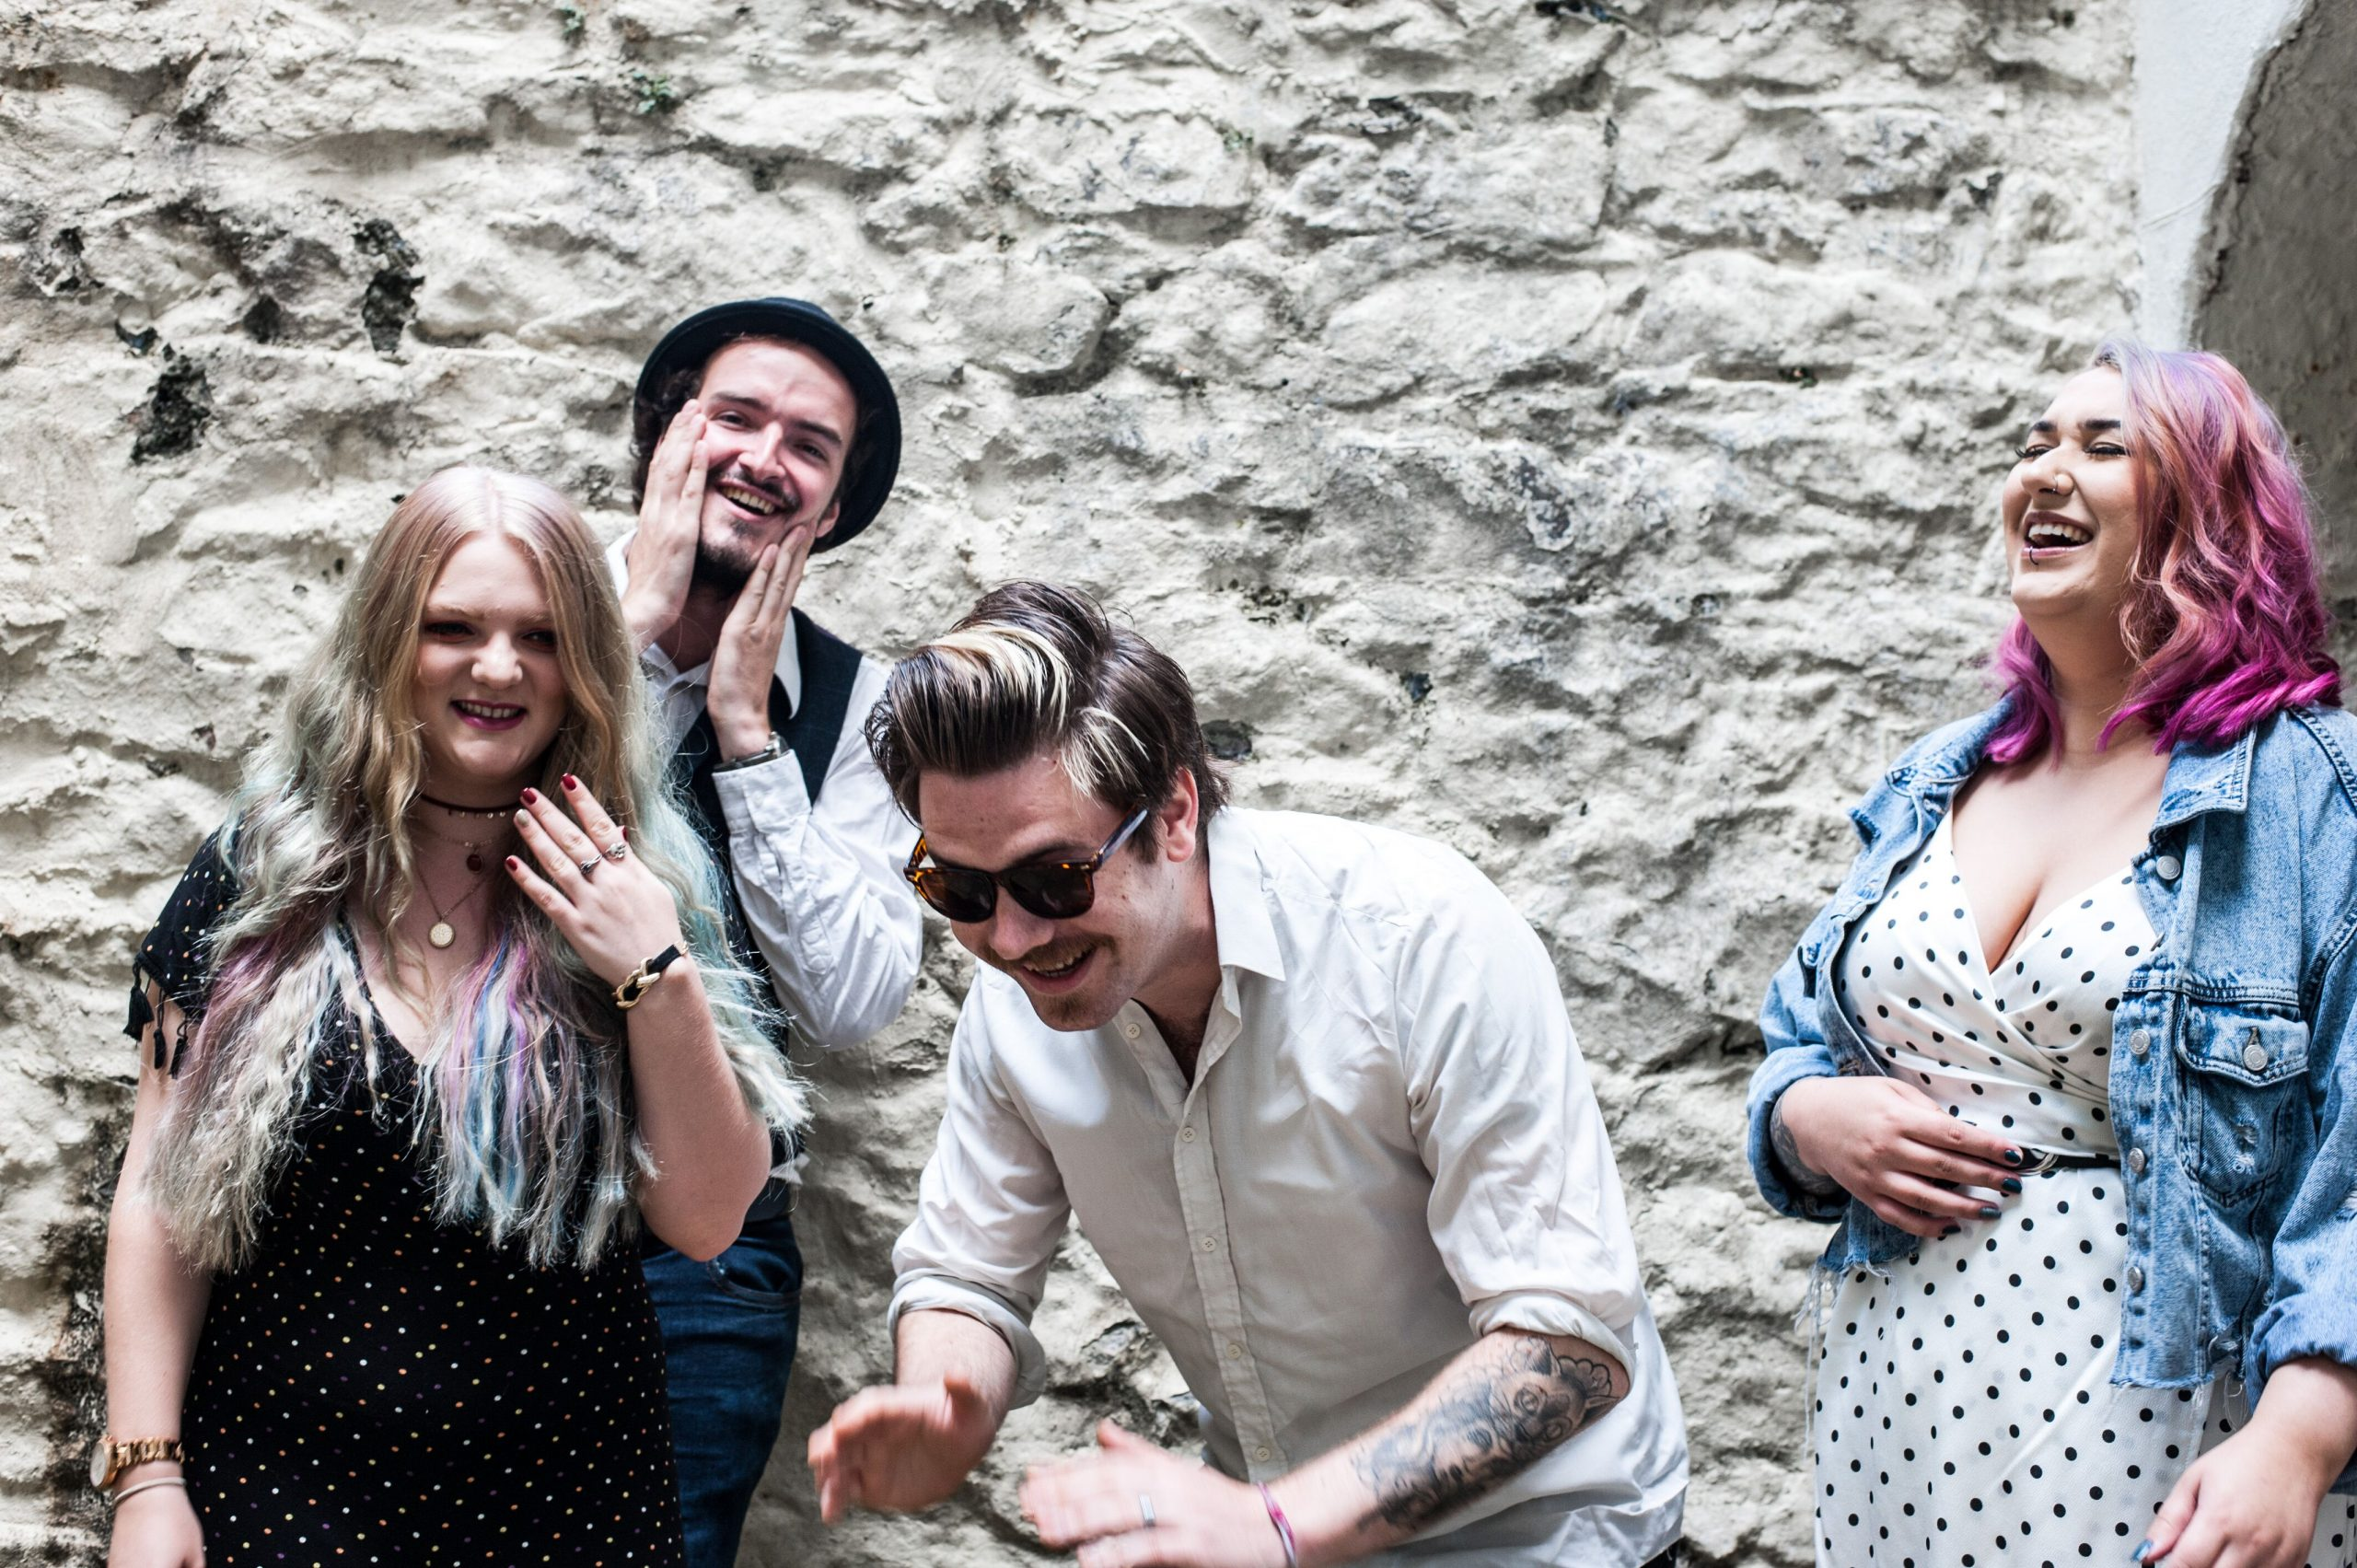 Band of the Day: Fonzy and Company